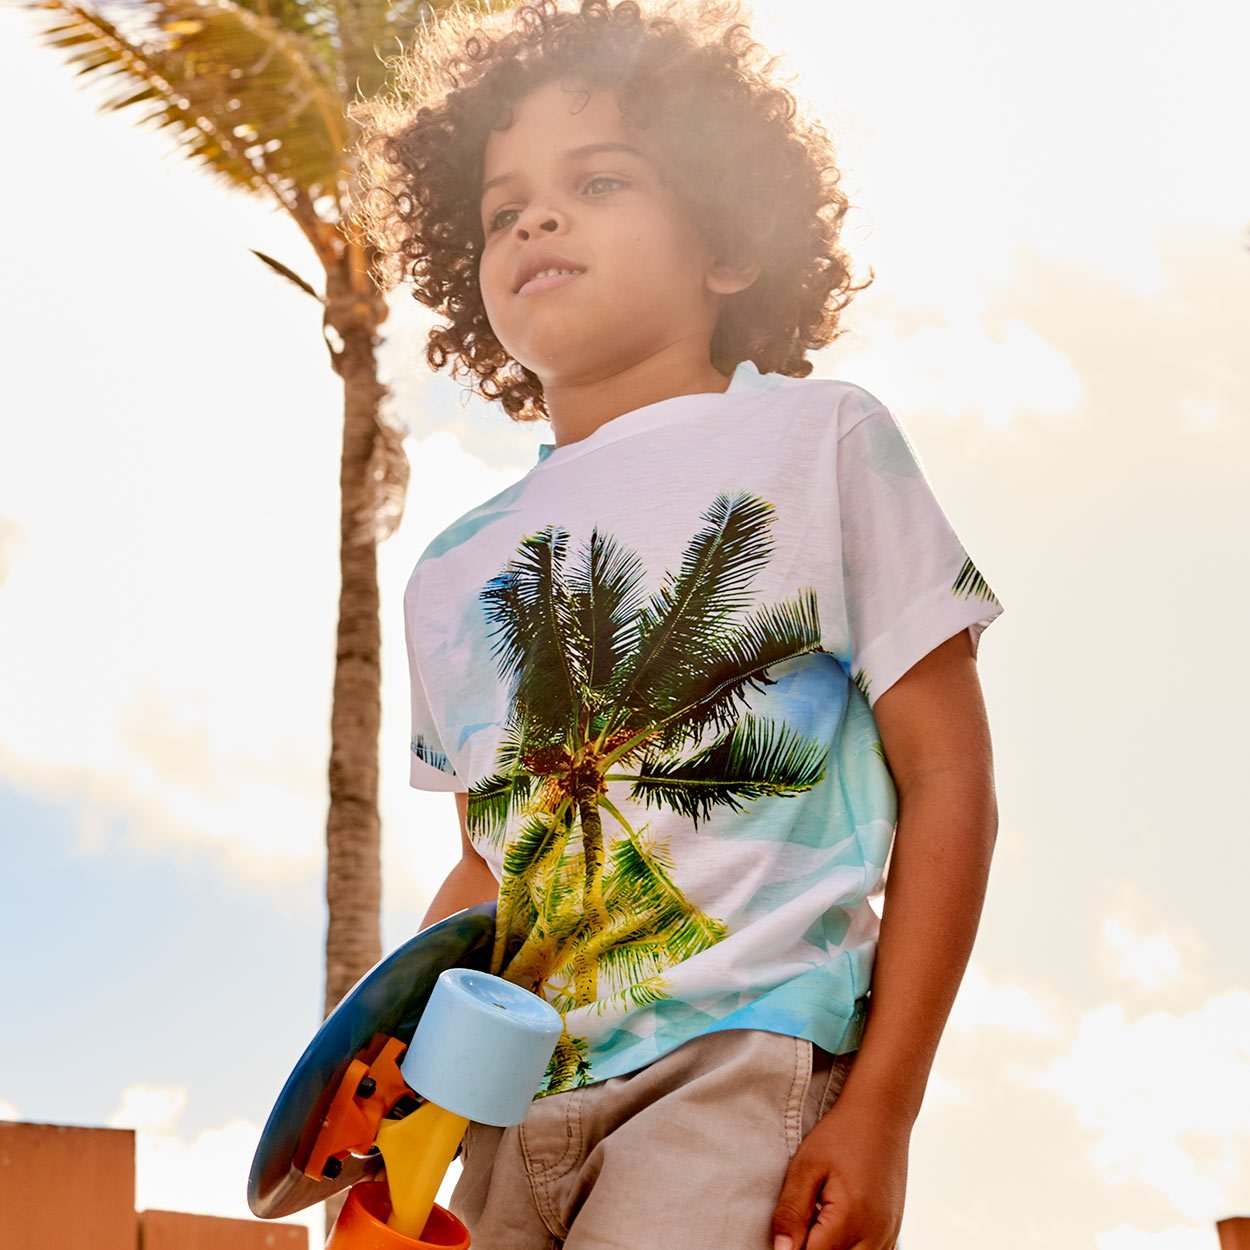 Kids Palm Trees Photo Tshirt White Green Blue Size Xs L Unisex Geo Tropical Skater Boy At The Beach Holding His Skateboard Sunpoplife